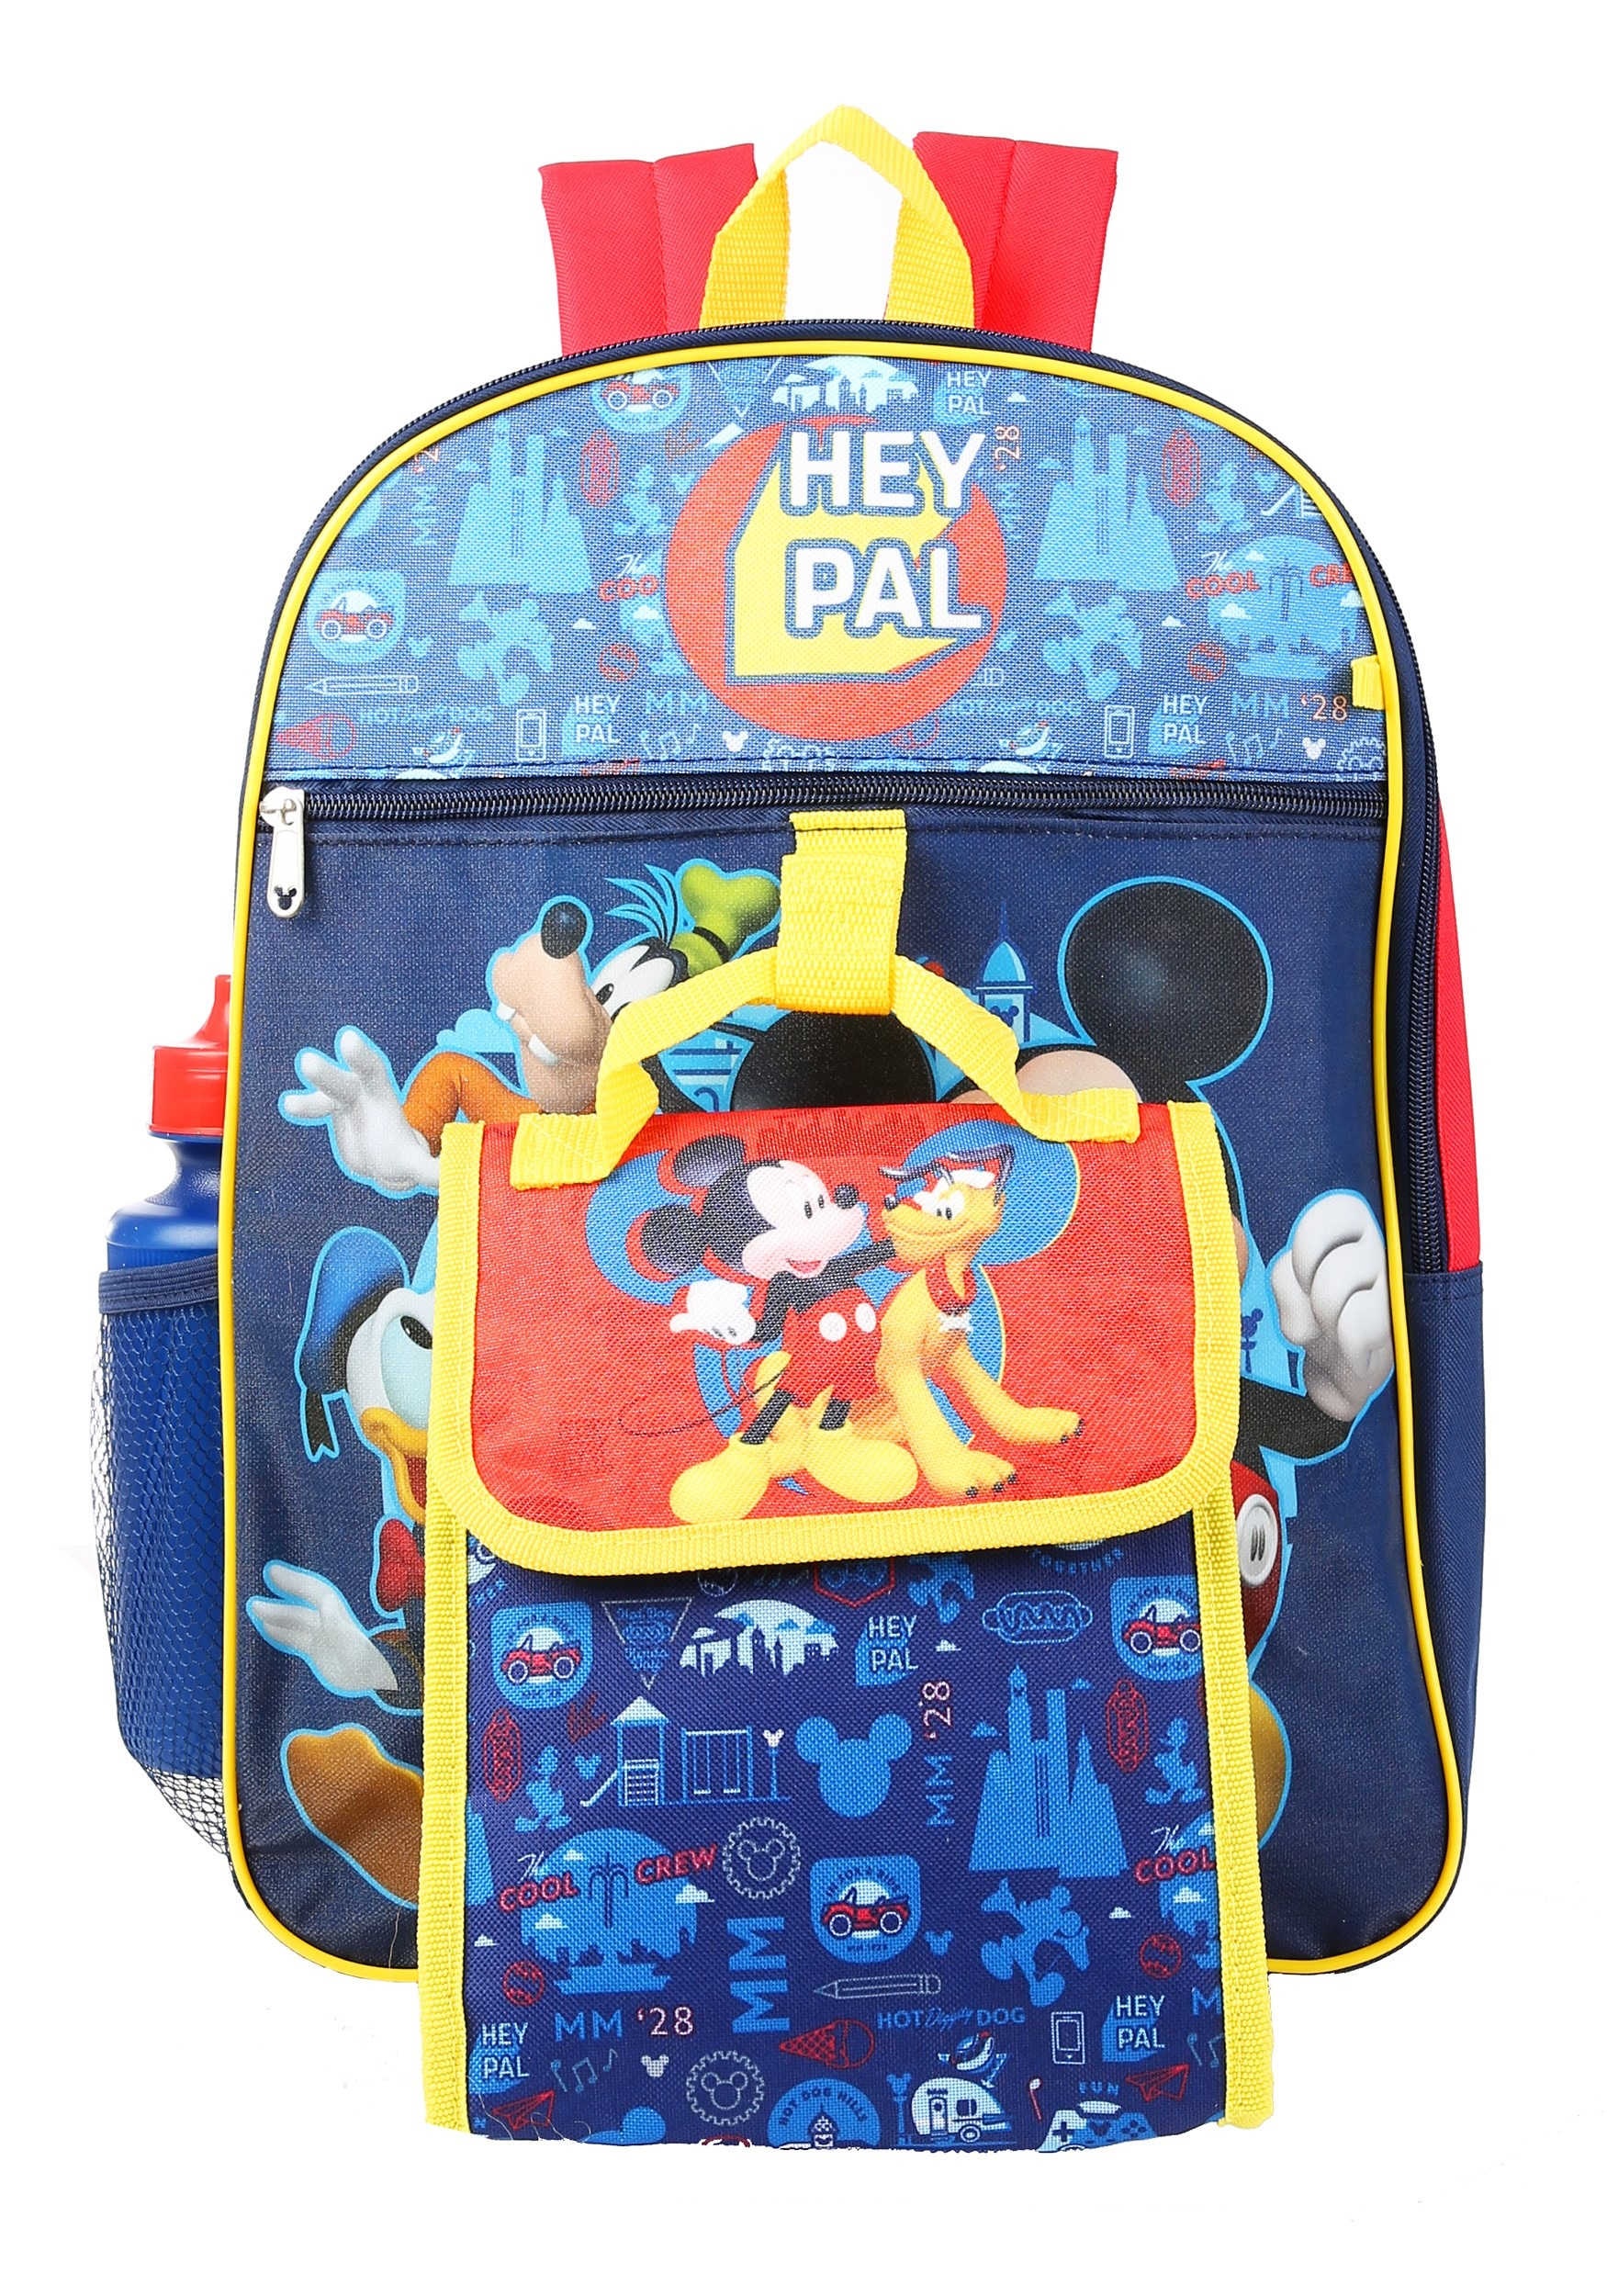 5pc Mickey Mouse Backpack Set